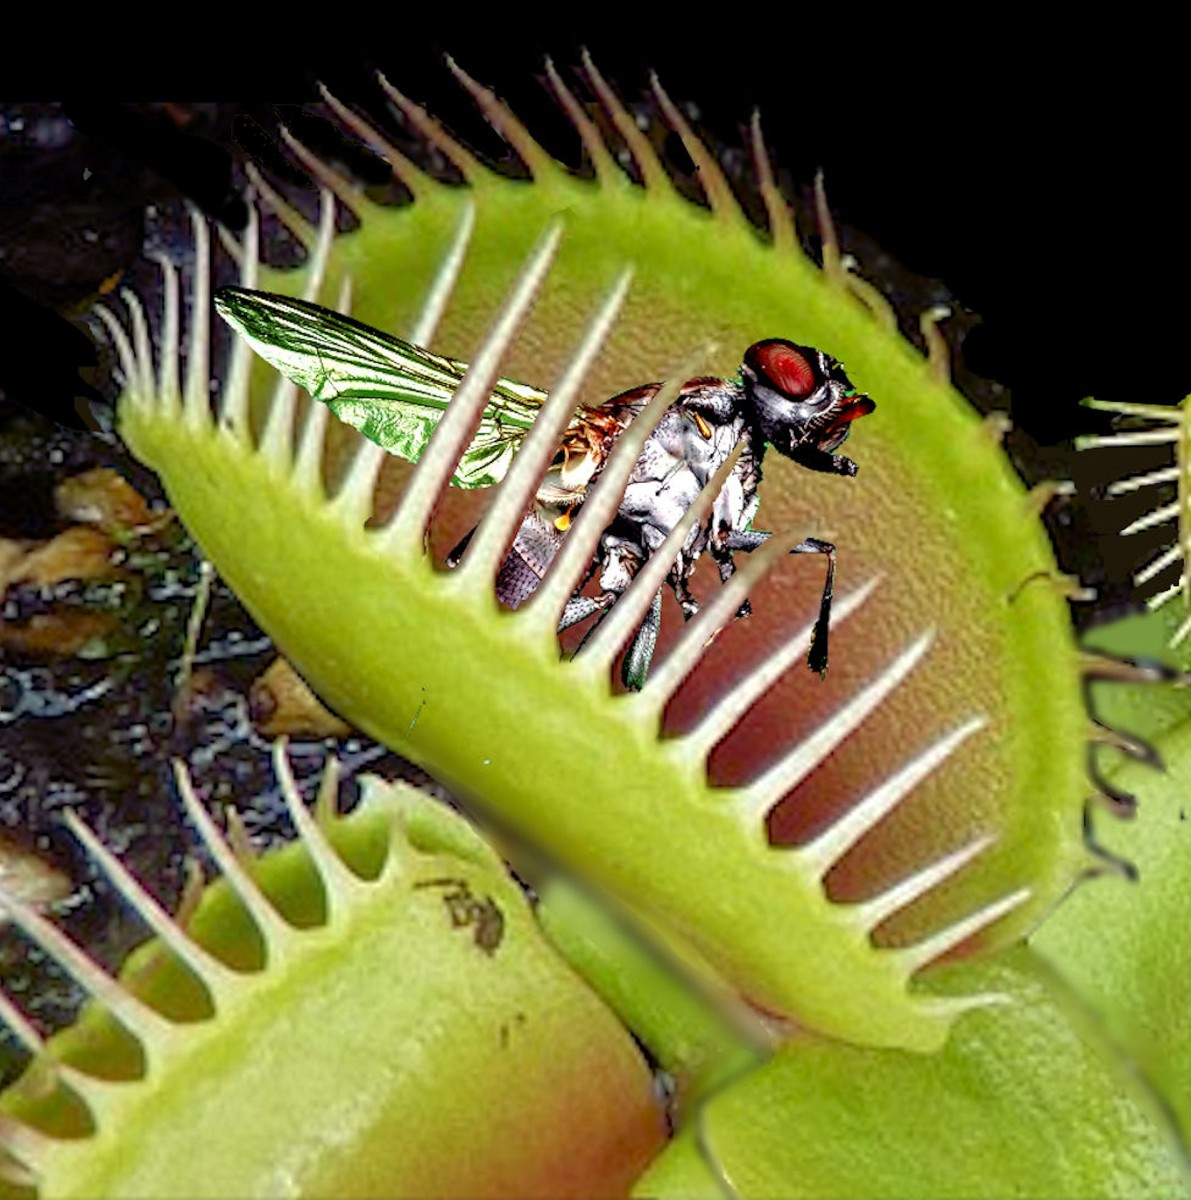 Do you need to hand-feed a Venus flytrap? And, if so, what should you feed it?